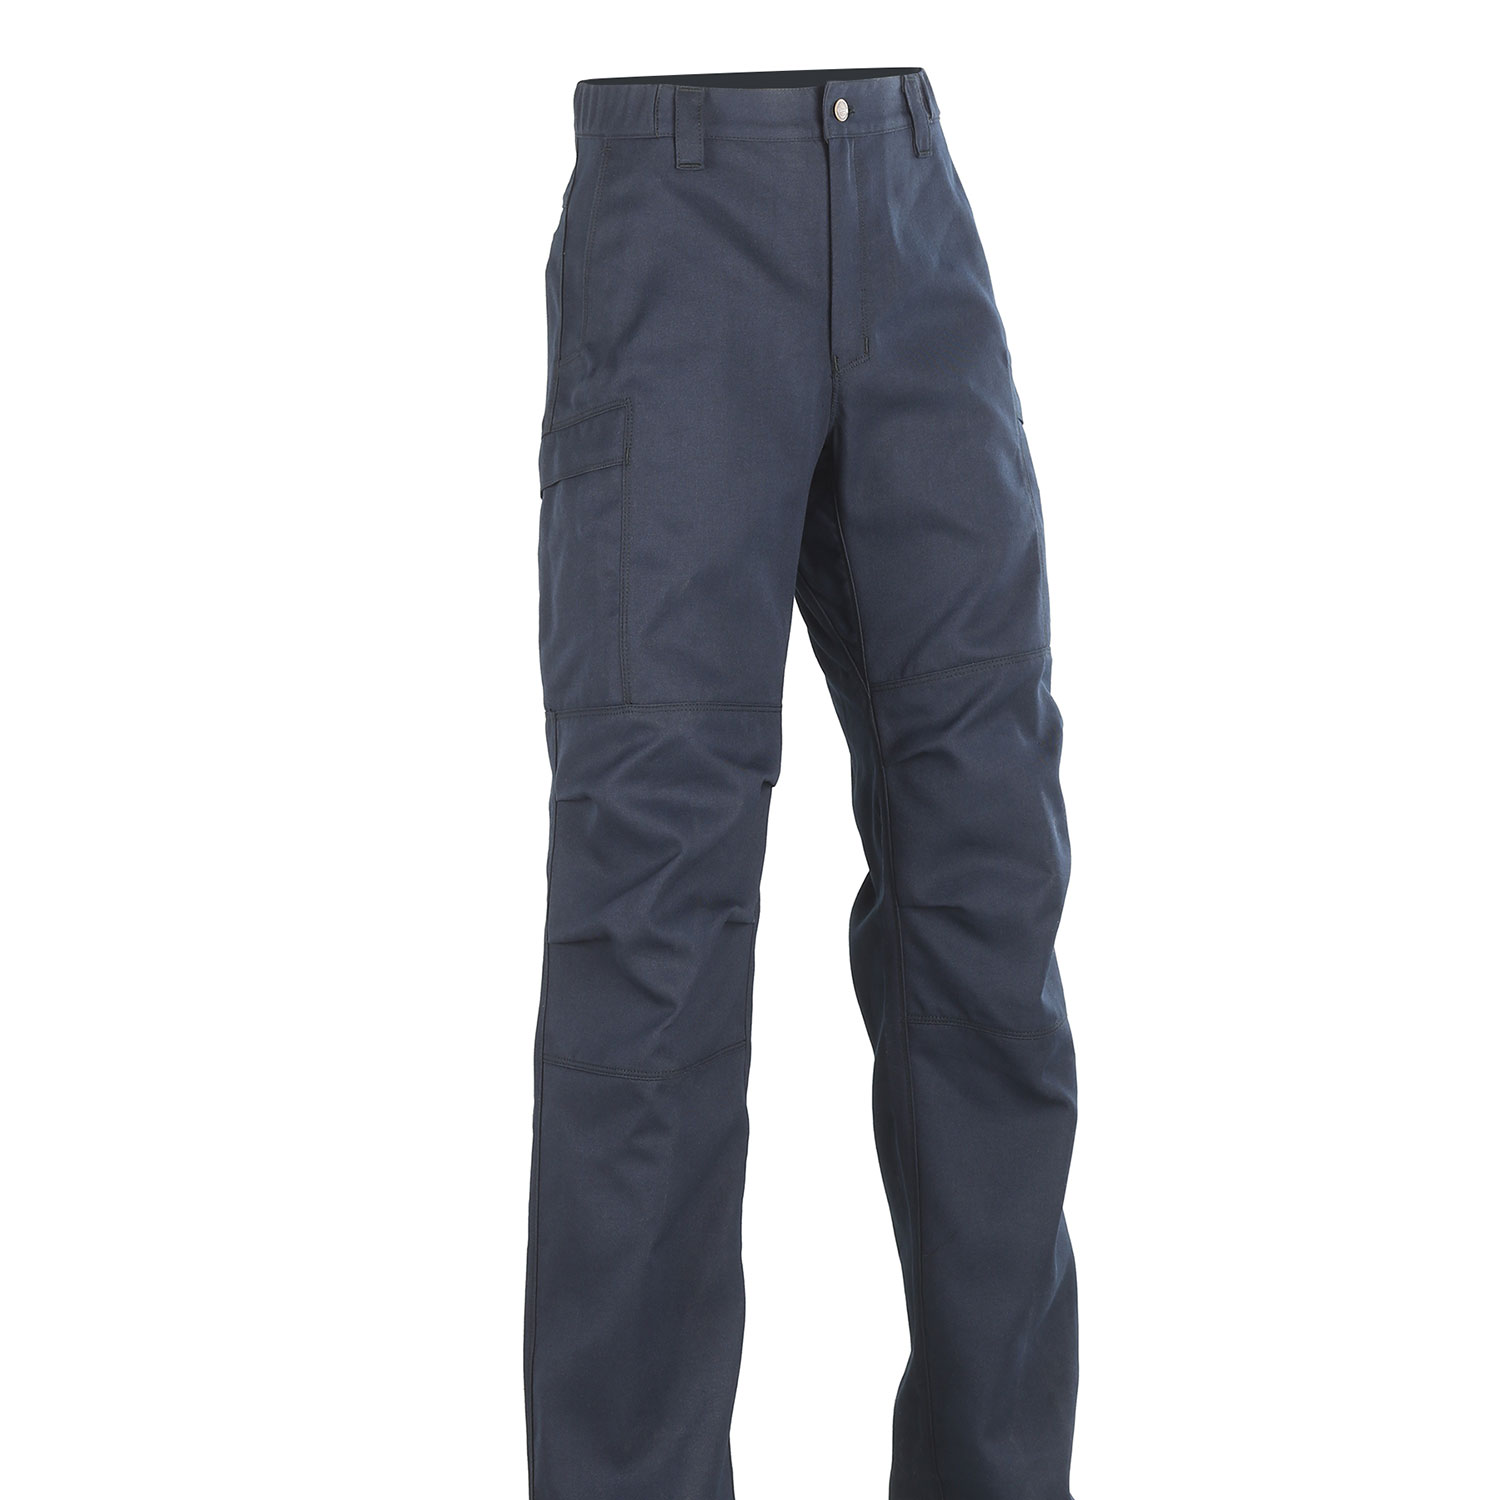 Flying Cross Nomex Vertx Style Cargo Pants